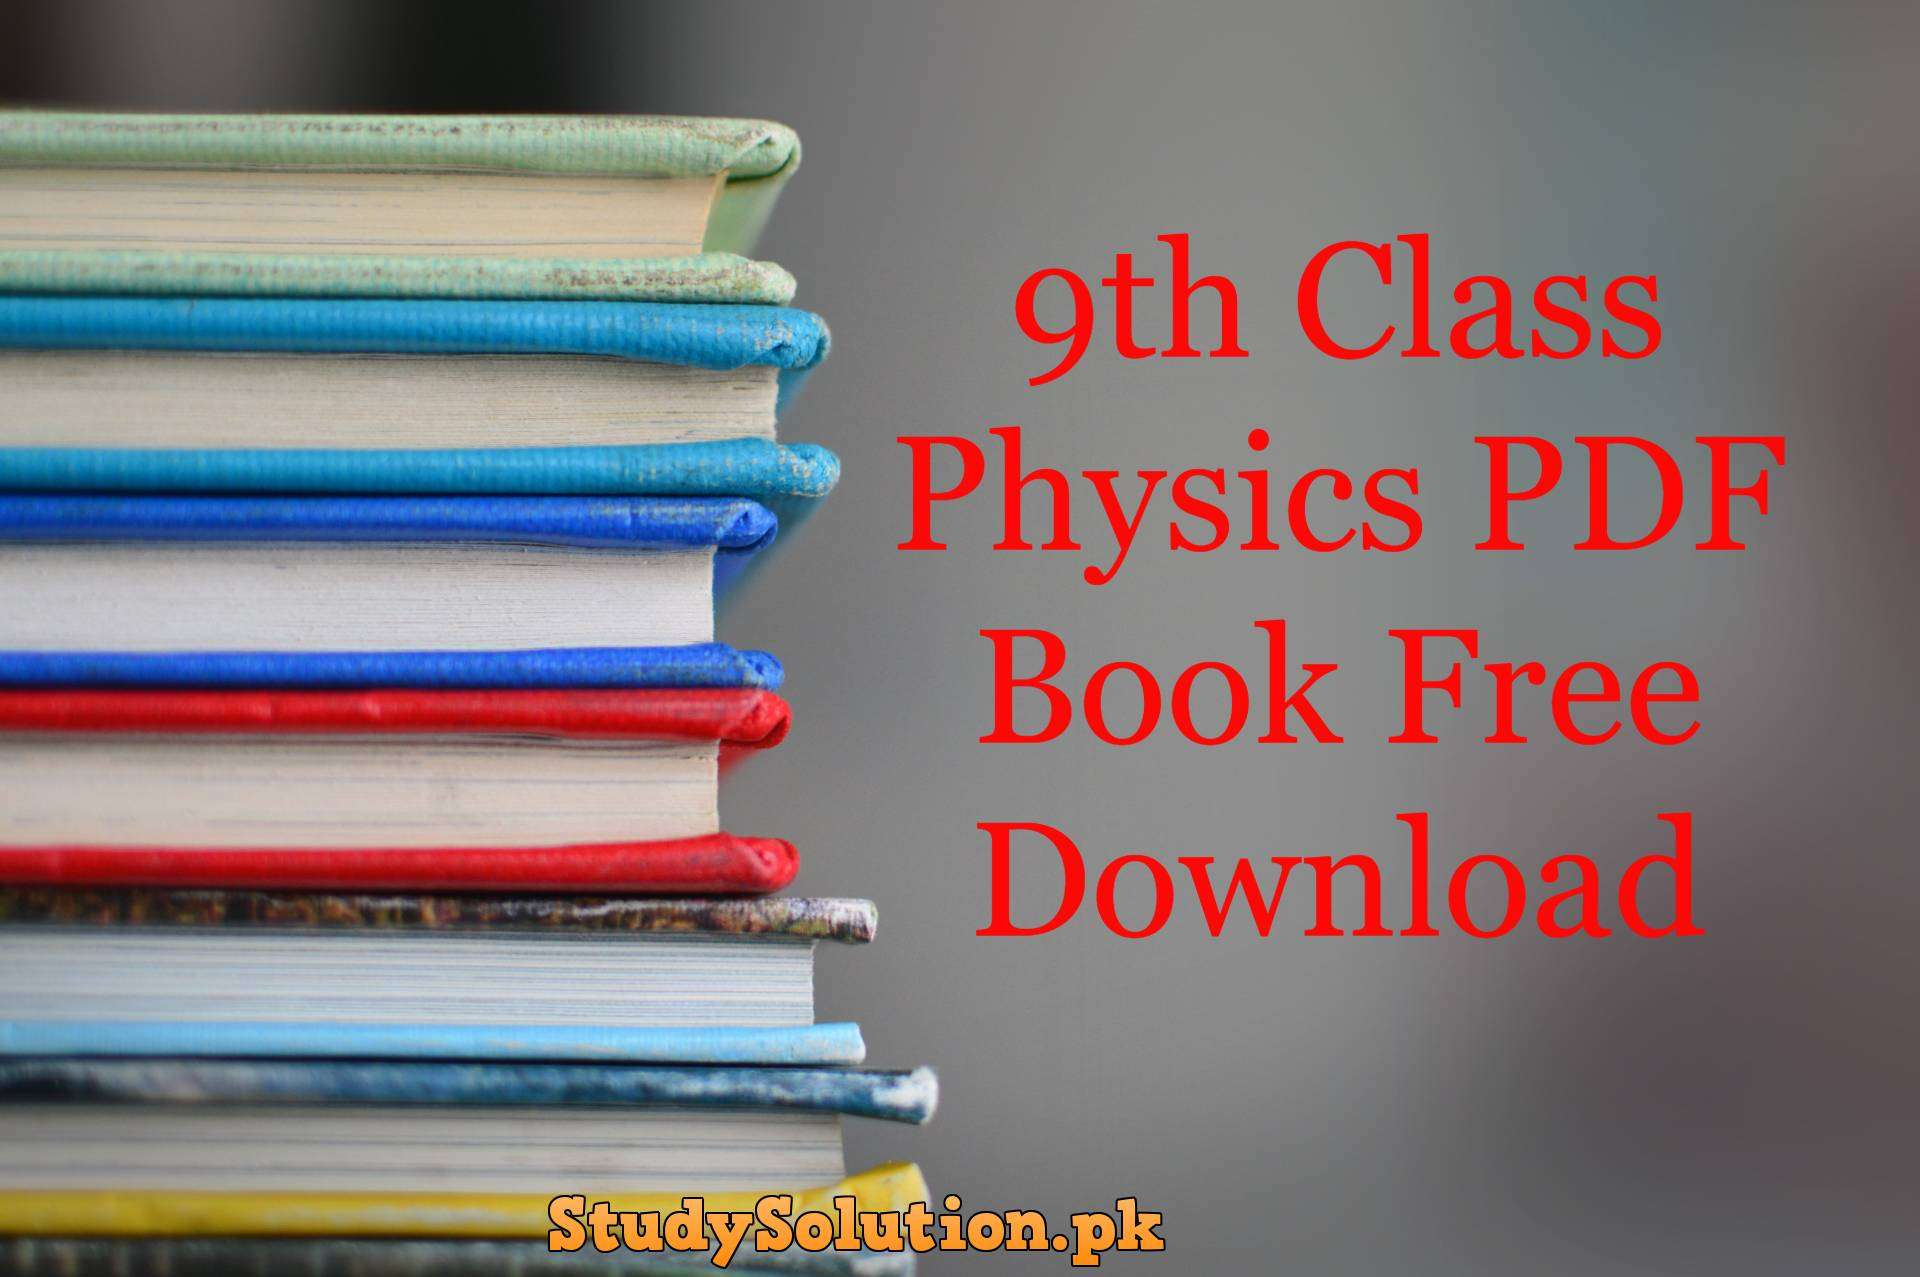 9th Class Physics PDF Book Free Download